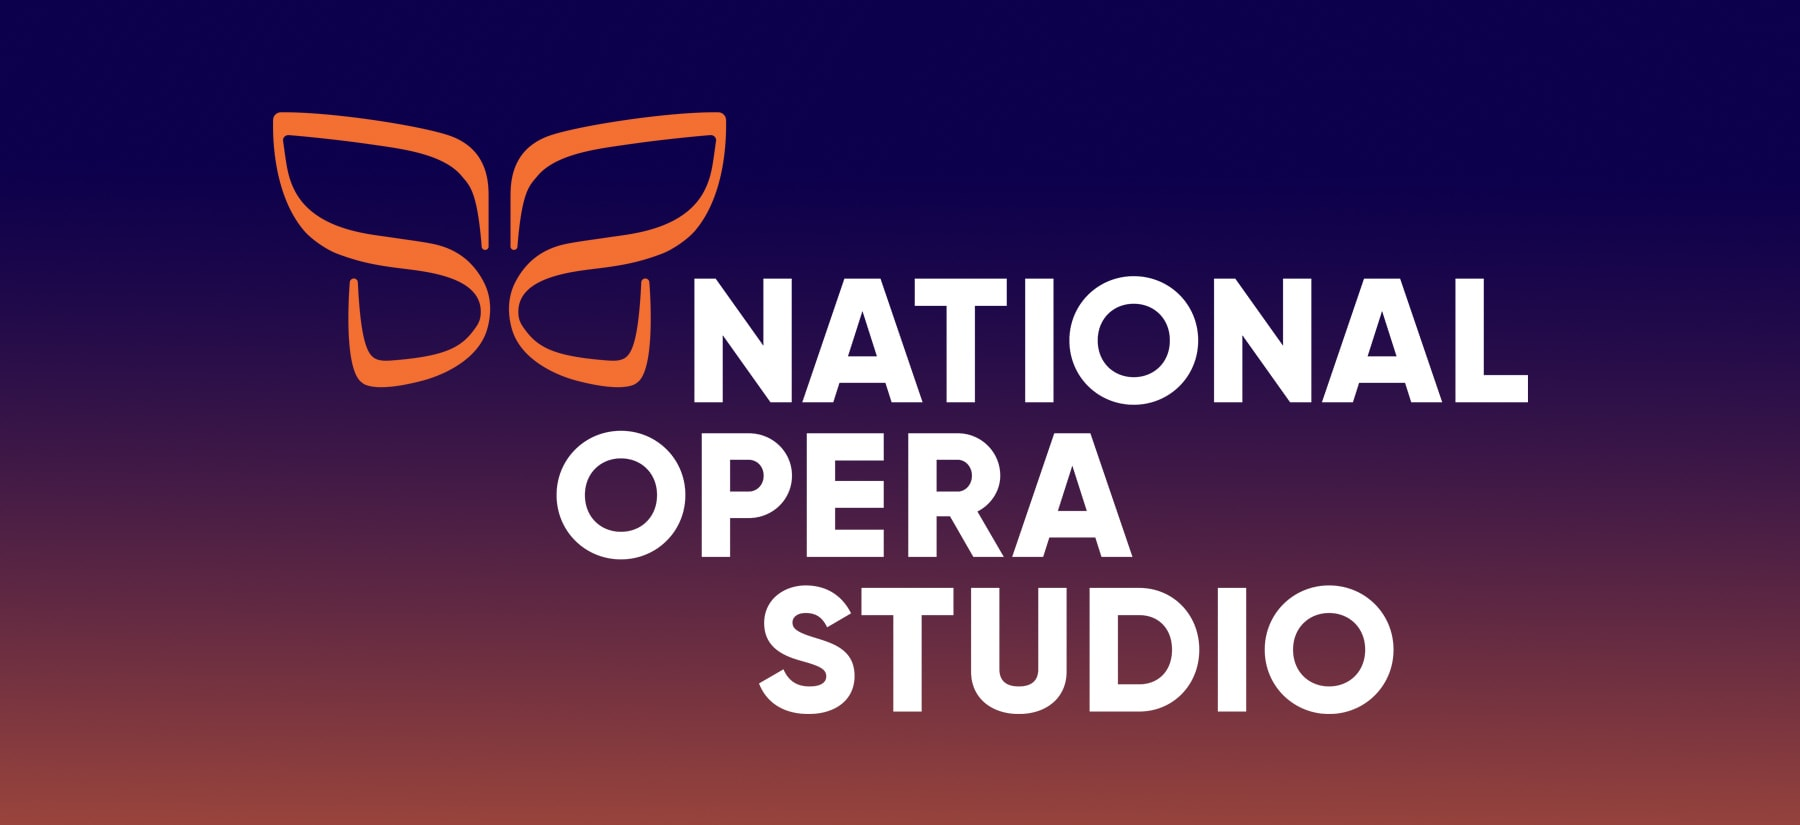 The National Opera Studio launches a new brand identity and website